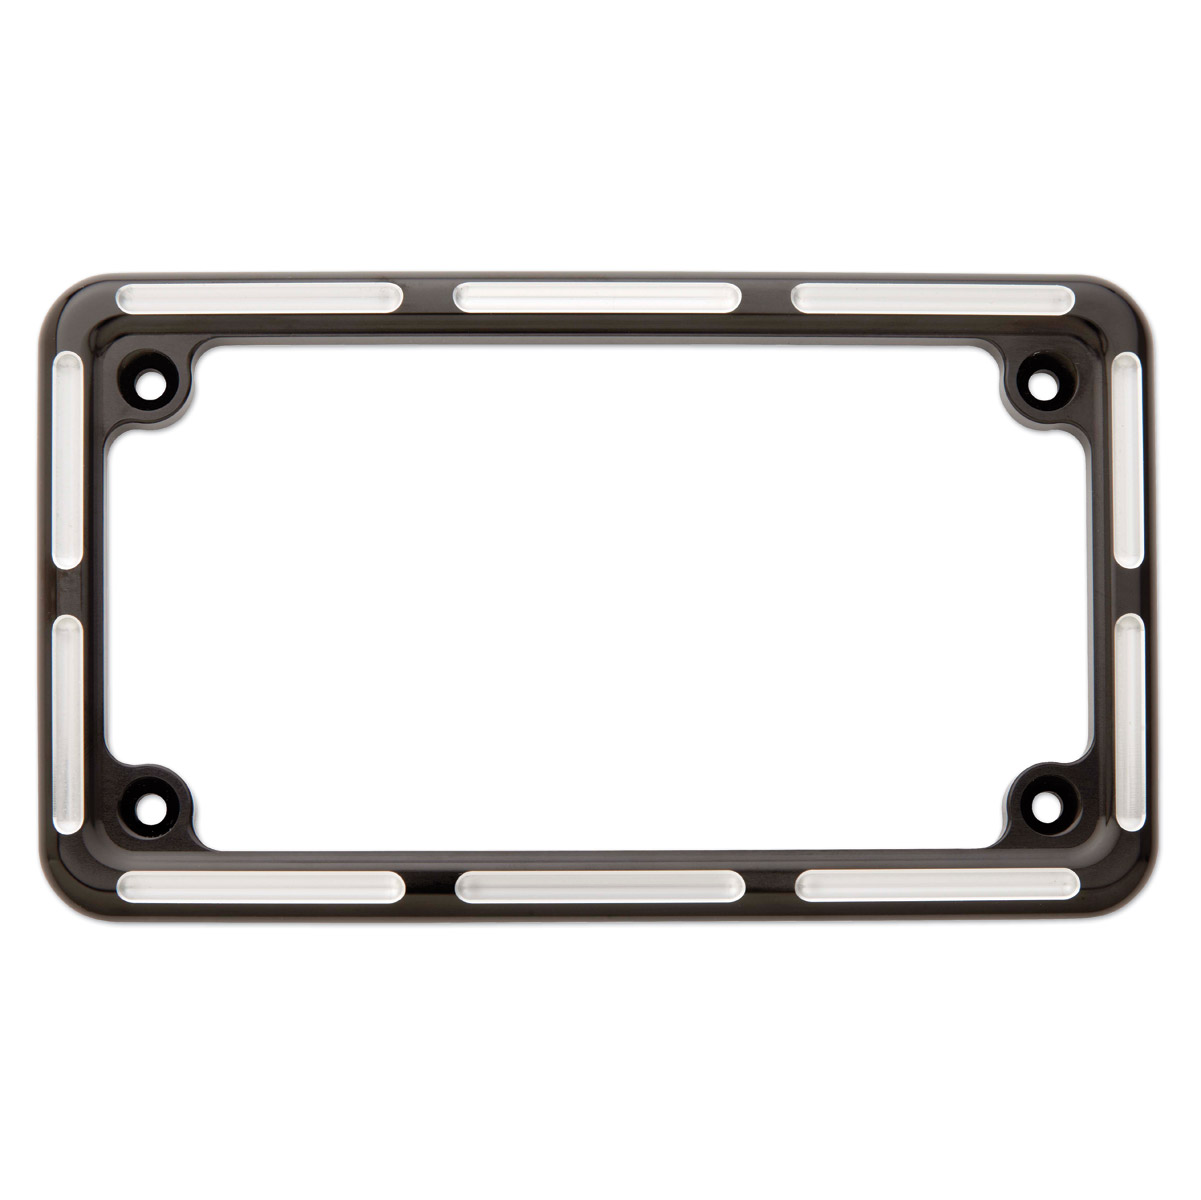 Arlen Ness Slot Track Black License Plate Frame | 138-783 | J&P Cycles